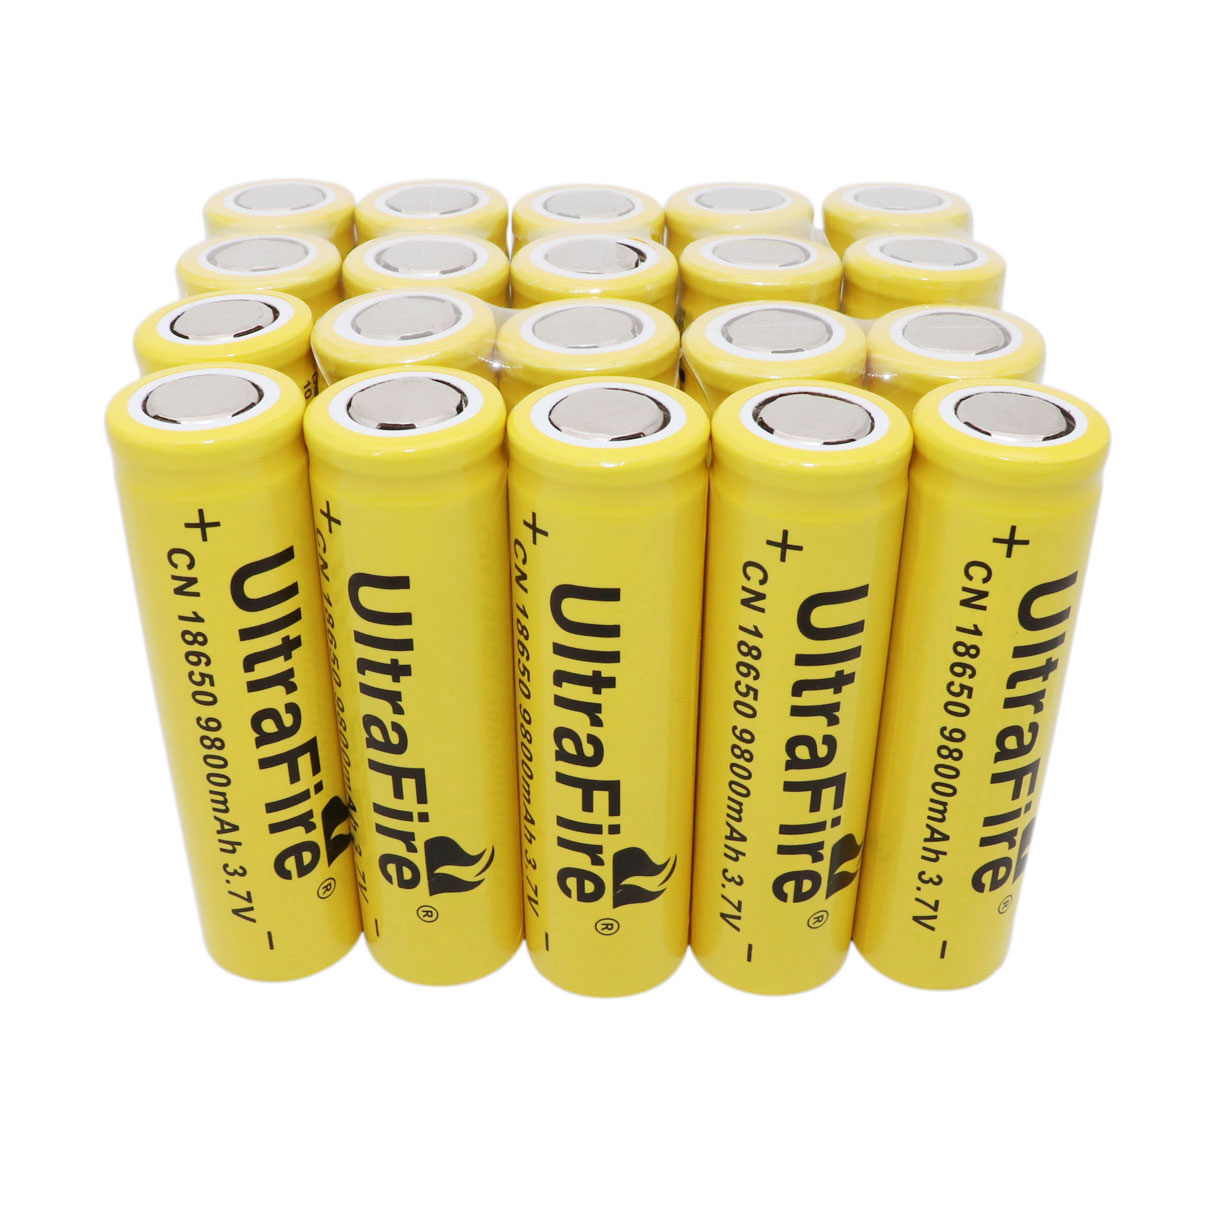 3 7V 9800mAh 18650 Li-ion Rechargeable Battery Flat Top for